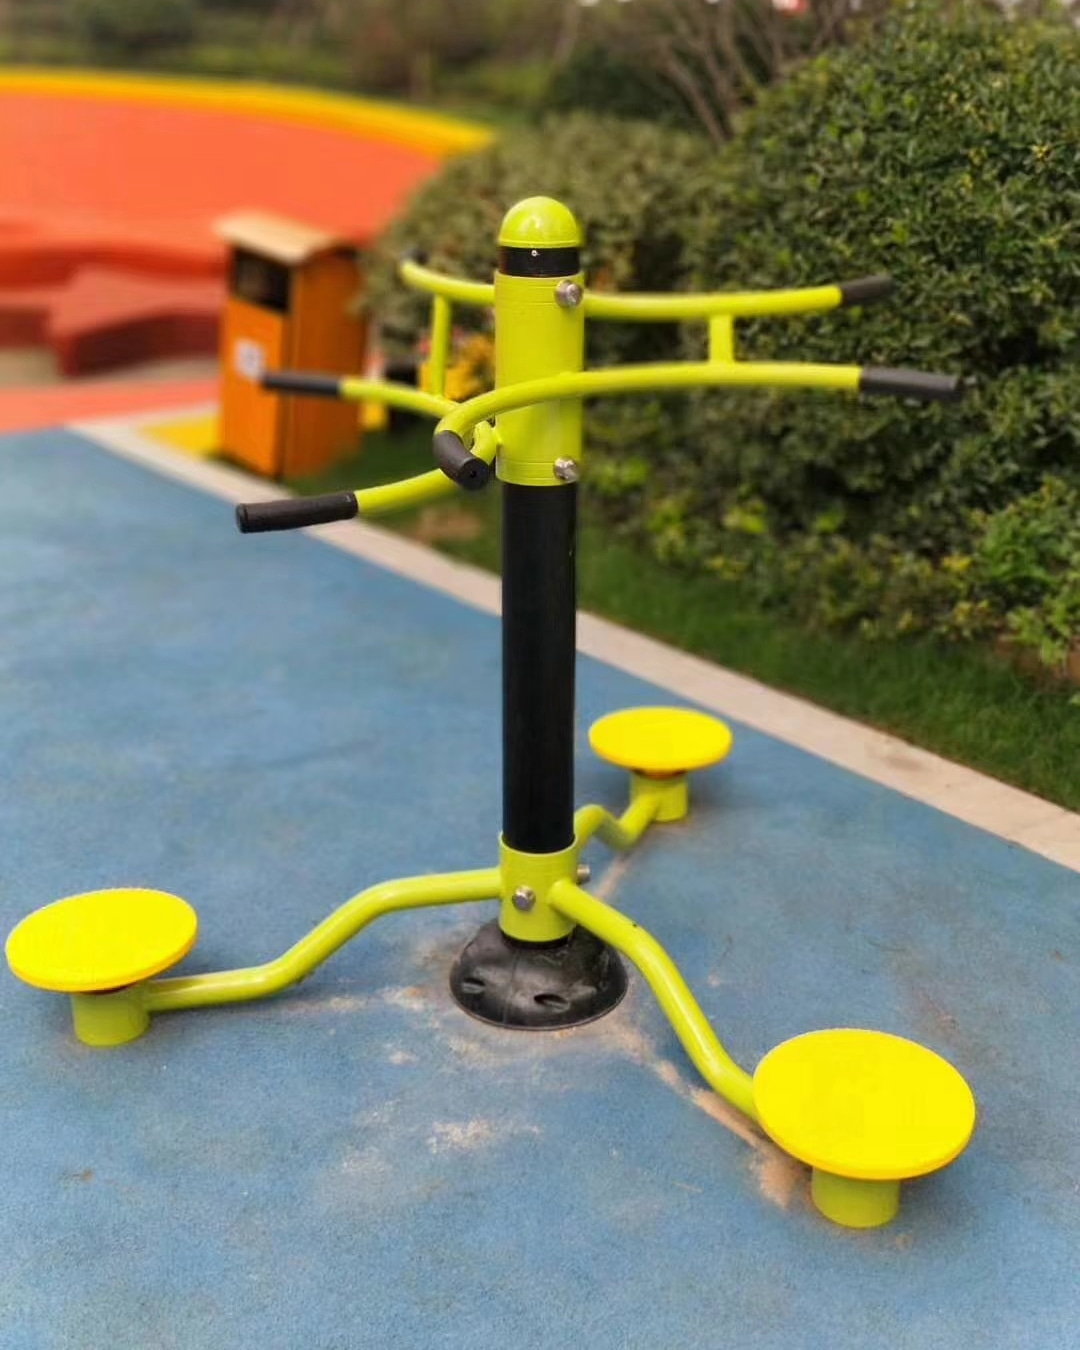 Playground Workouts Get a Full Workout from the Park